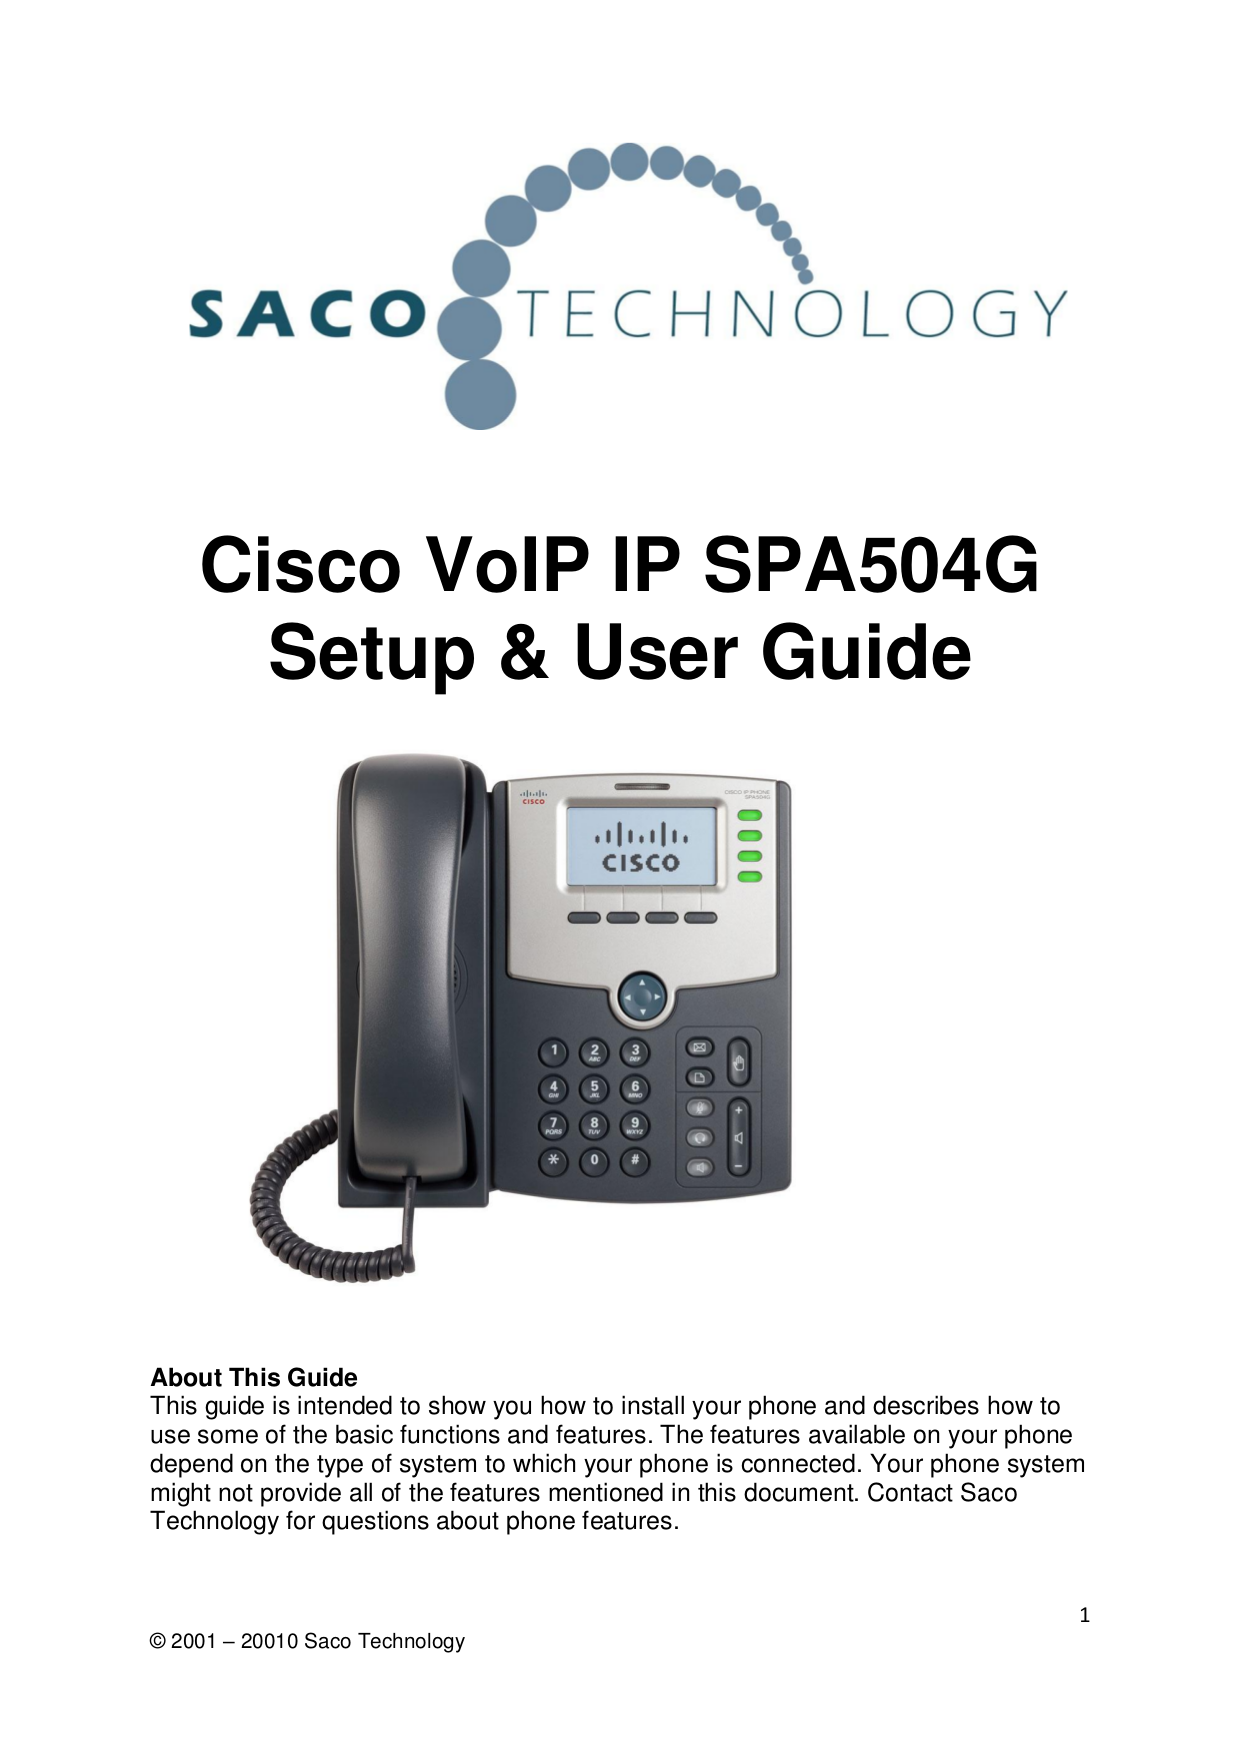 Using keypad shortcuts, caring for your phone | cisco ip phone spa.